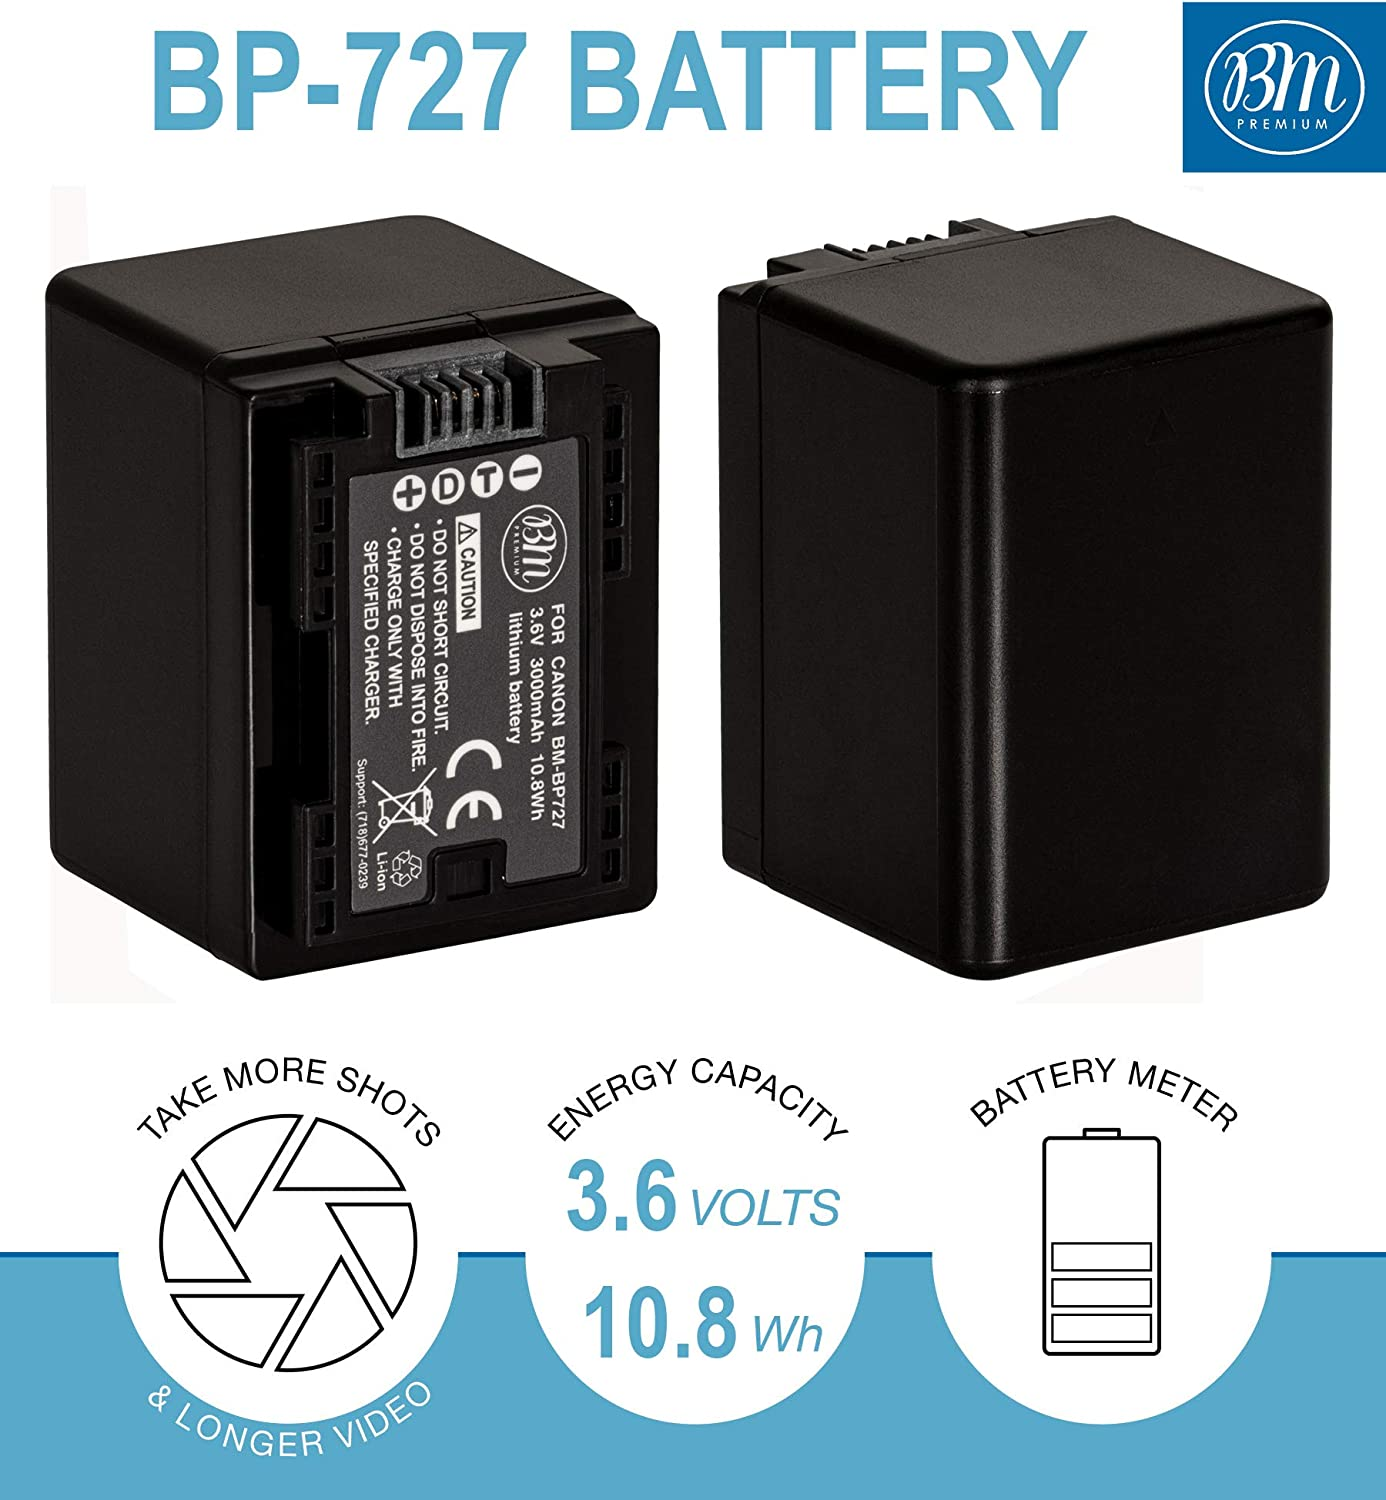 BM Premium 2 BP-727 Batteries and Dual Charger for Canon Vixia HFR80 HFR82 HFR800, HFR70, HFR72, HFR700, HFR32, HFR300, HFR40, HFR42, HFR400, HFR50, HFR52, HFR500, HFR60, HFR62, HFR600 Camcorder : Camera & Photo